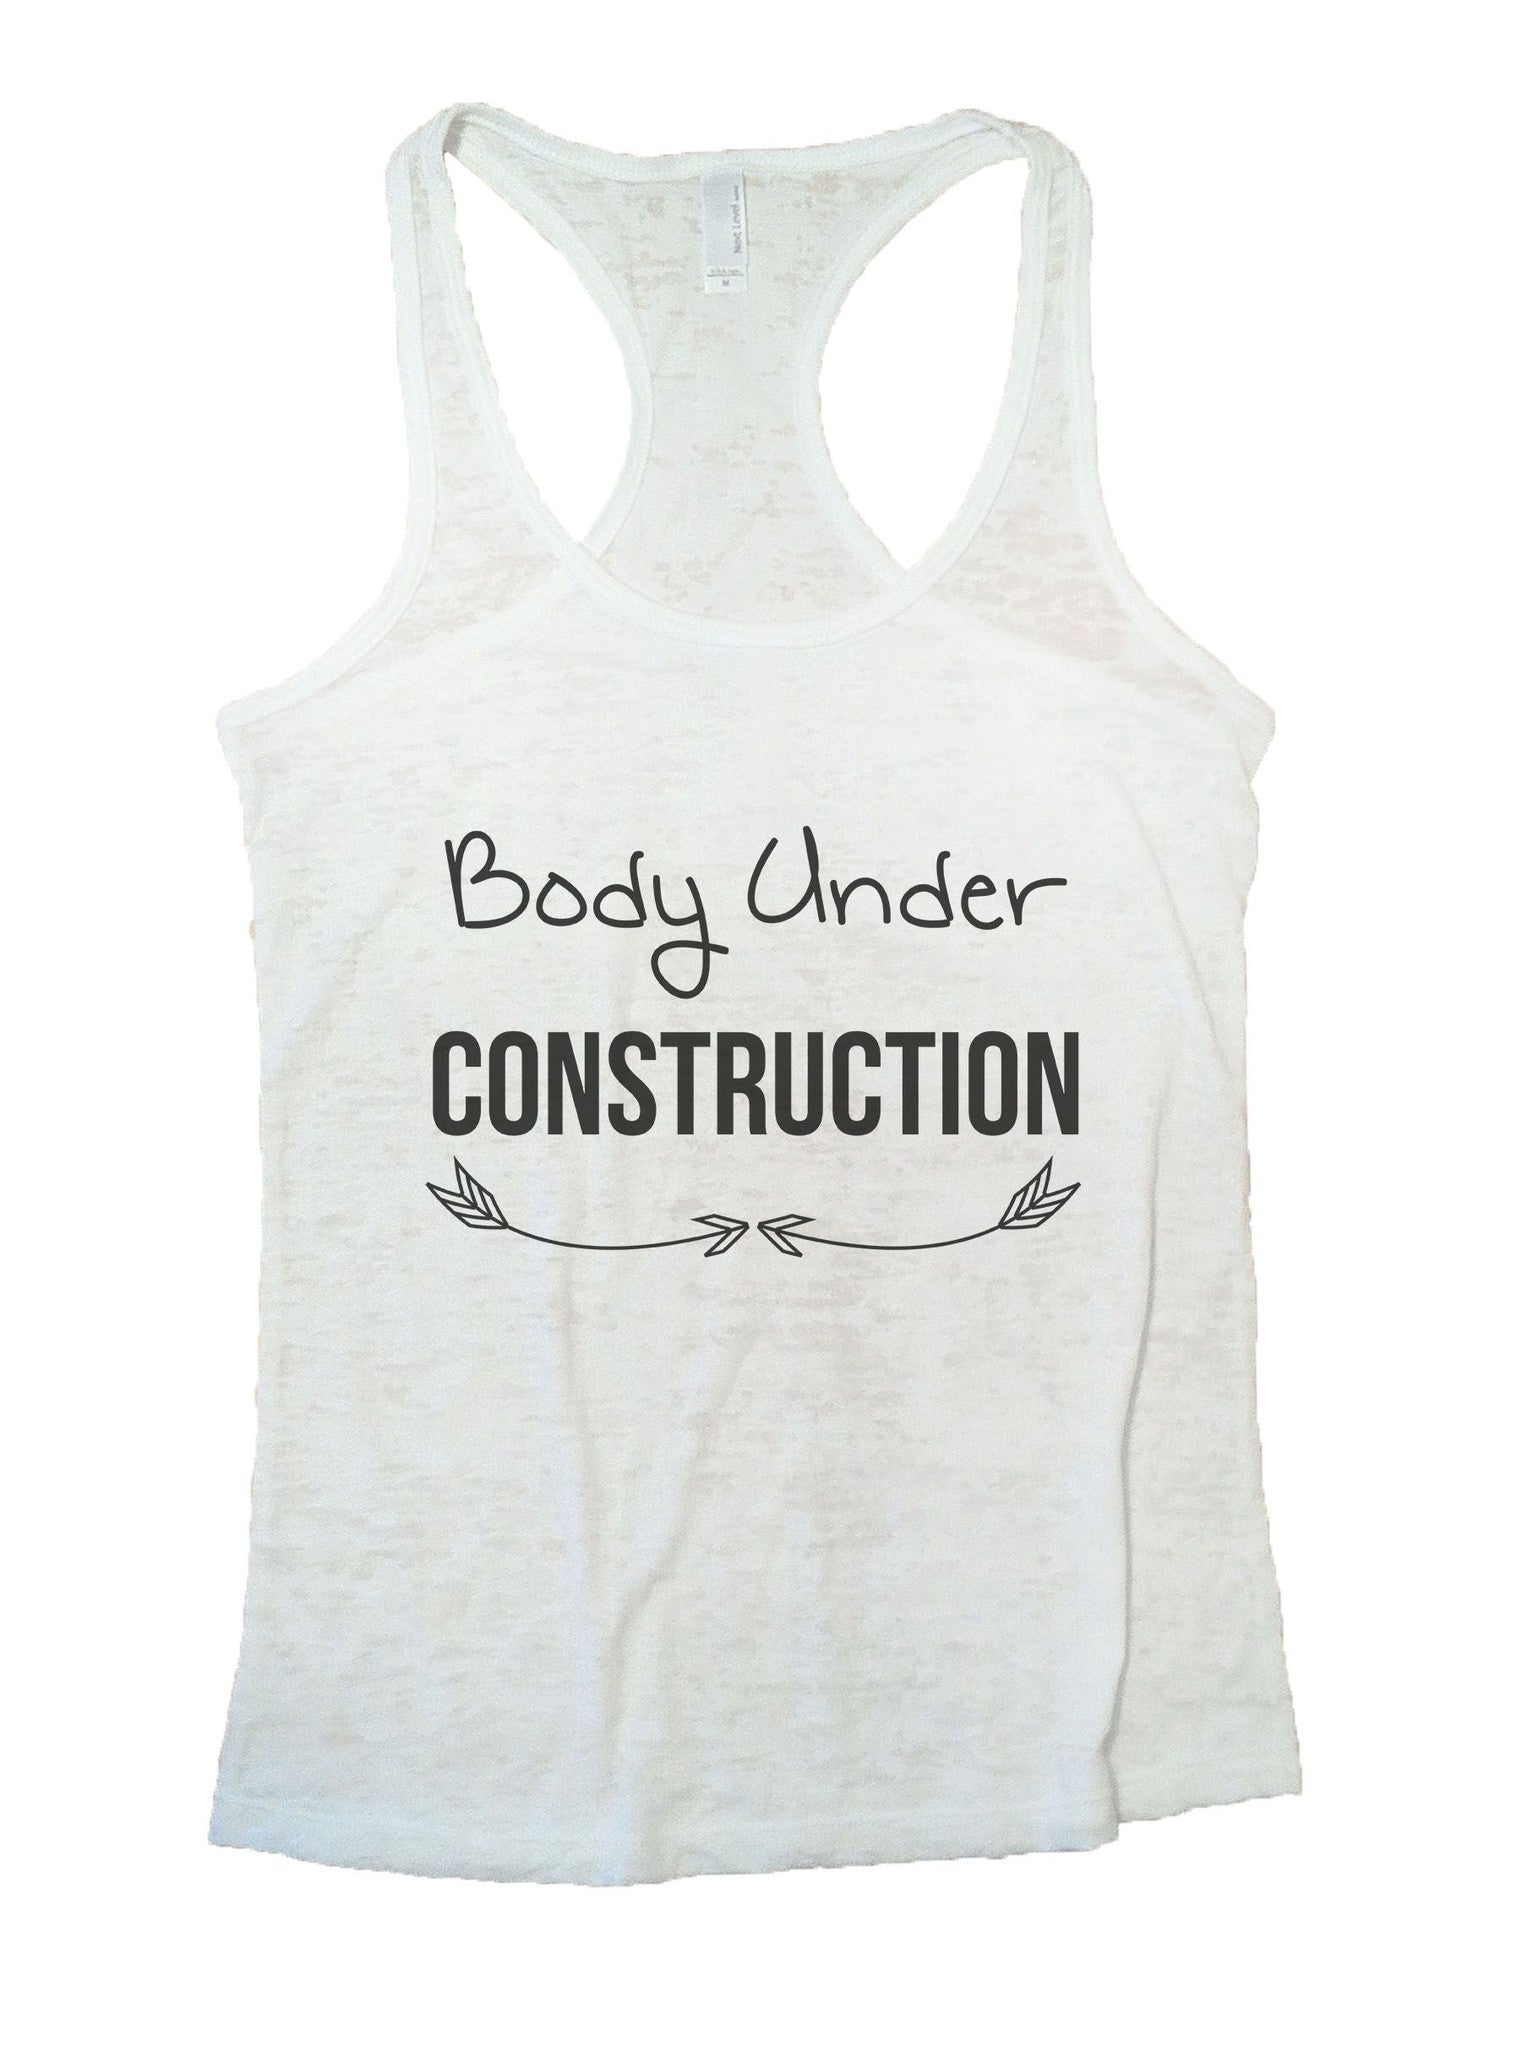 Body Under Construction Burnout Tank Top By BurnoutTankTops.com - 877 - Funny Shirts Tank Tops Burnouts and Triblends  - 6